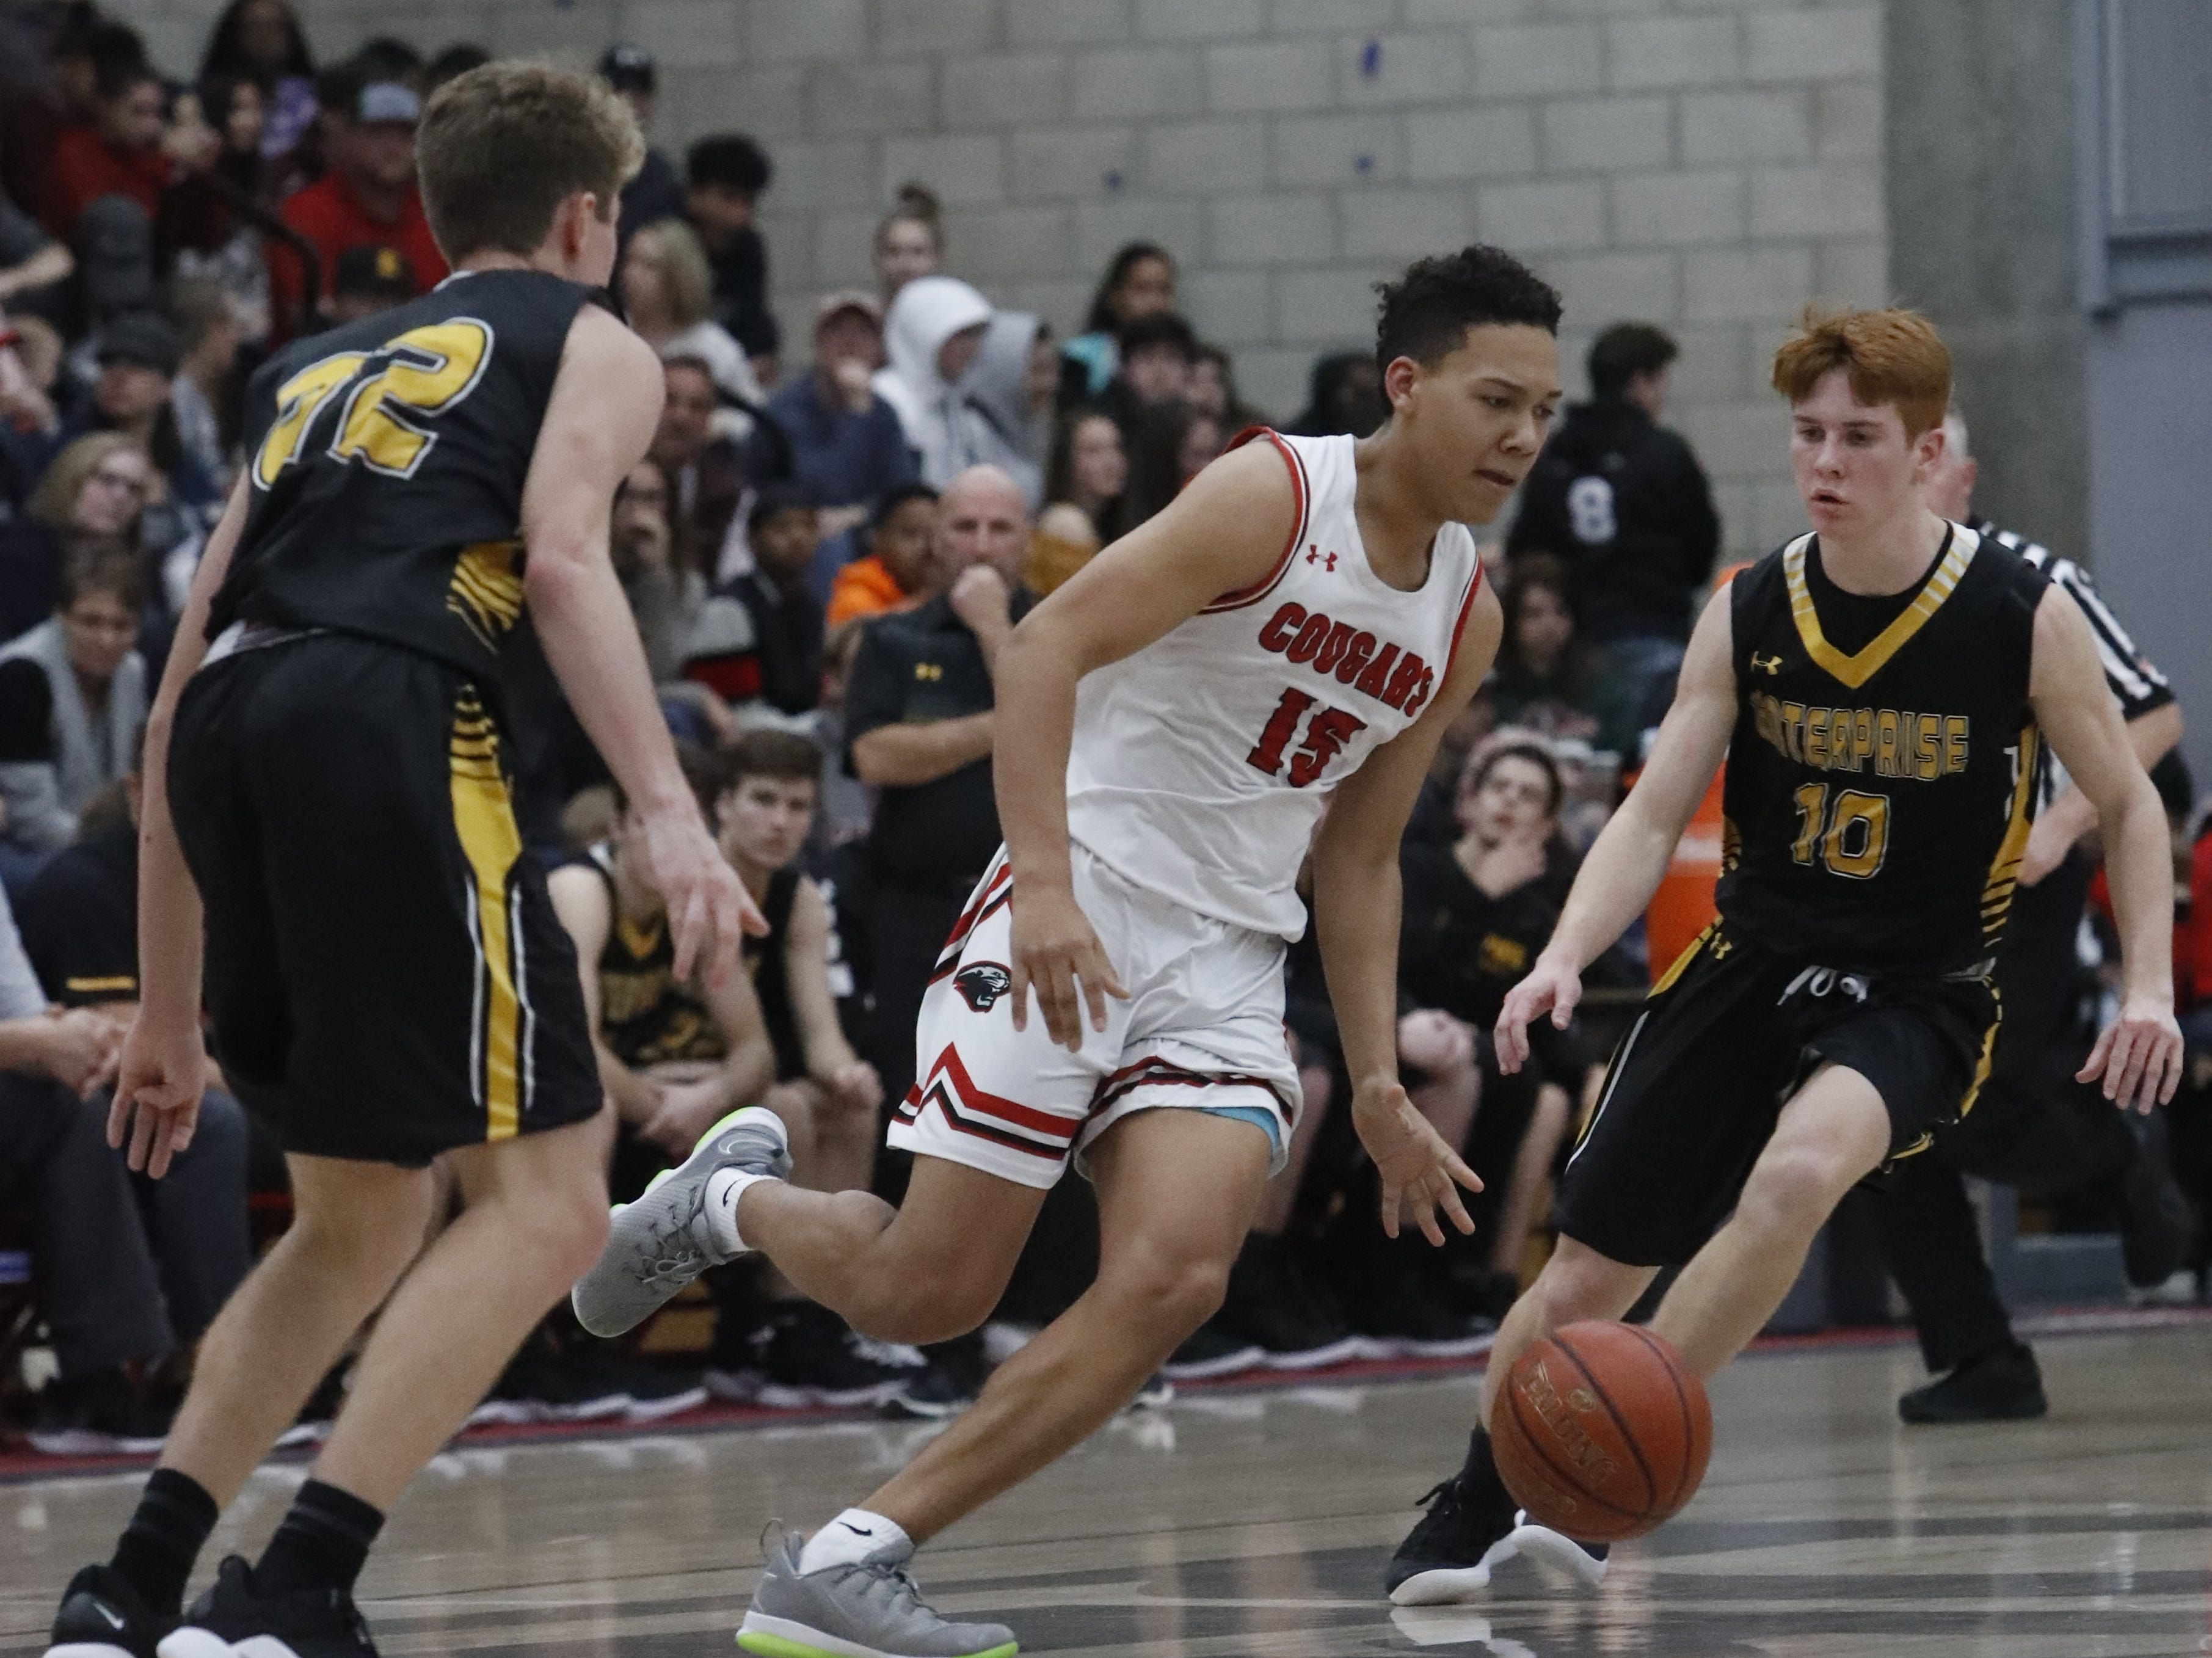 Foothill senior Josiah Hutt (center) dribbles between two Enterprise defenders during the Cougars' 55-50 win over the Hornets  in the Division III Northern Section semifinals on Wednesday, Feb. 20.